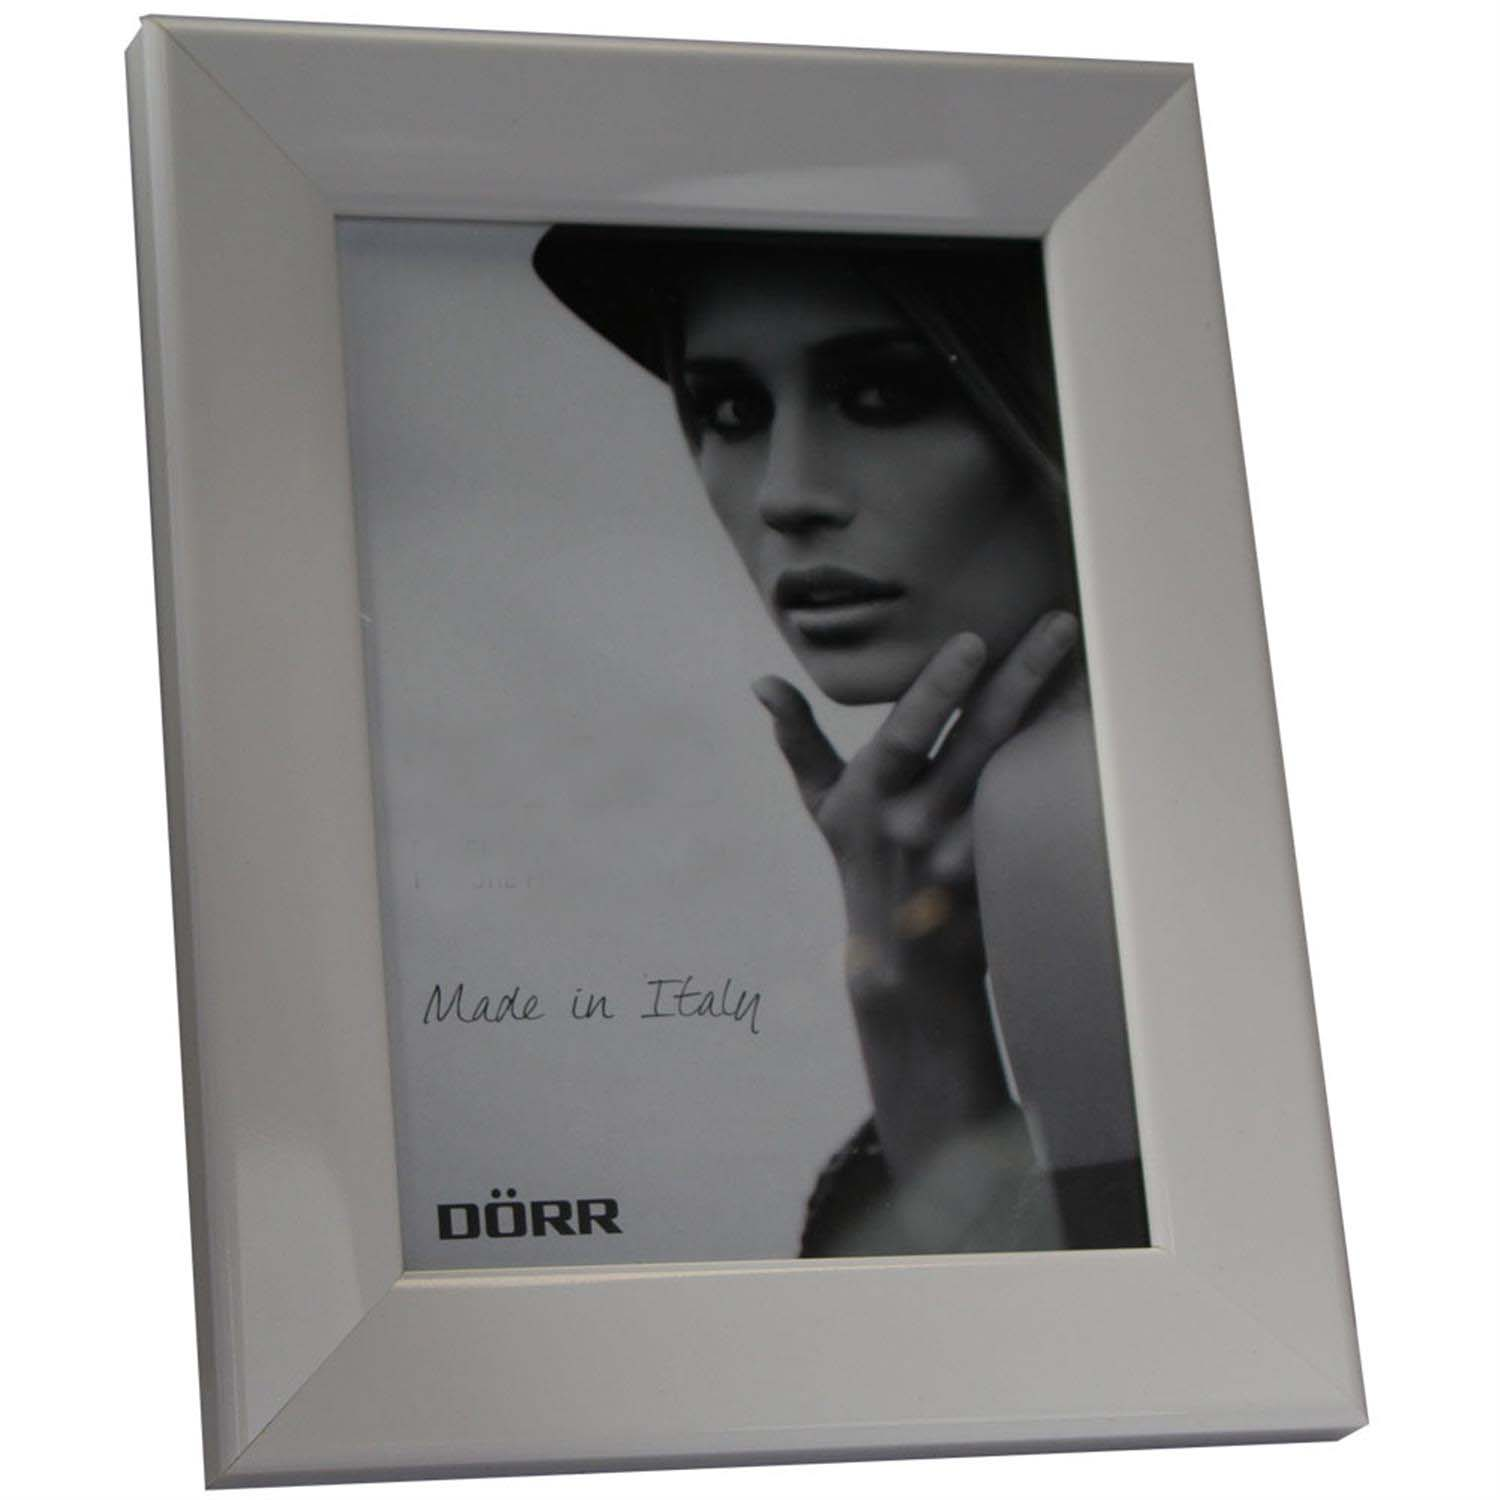 Dorr Lack White 7x5 Photo Frame